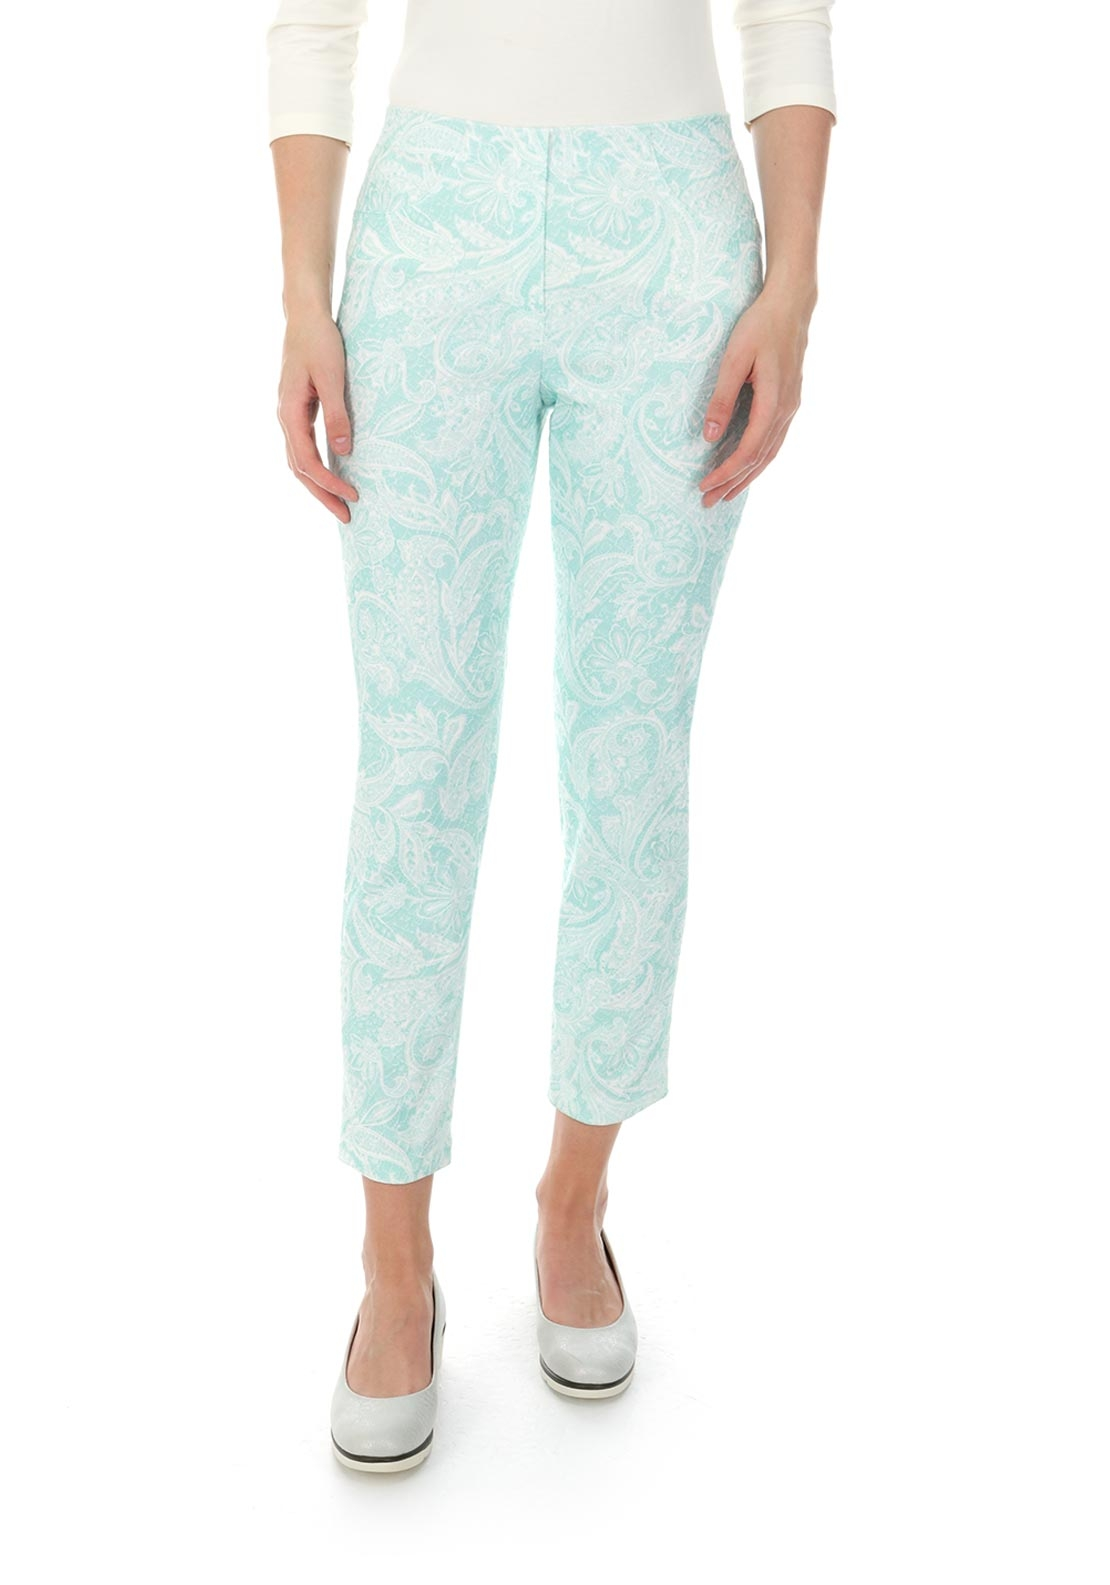 Robell Bella 09 Paisley Print Cropped Jeggings, Green and White